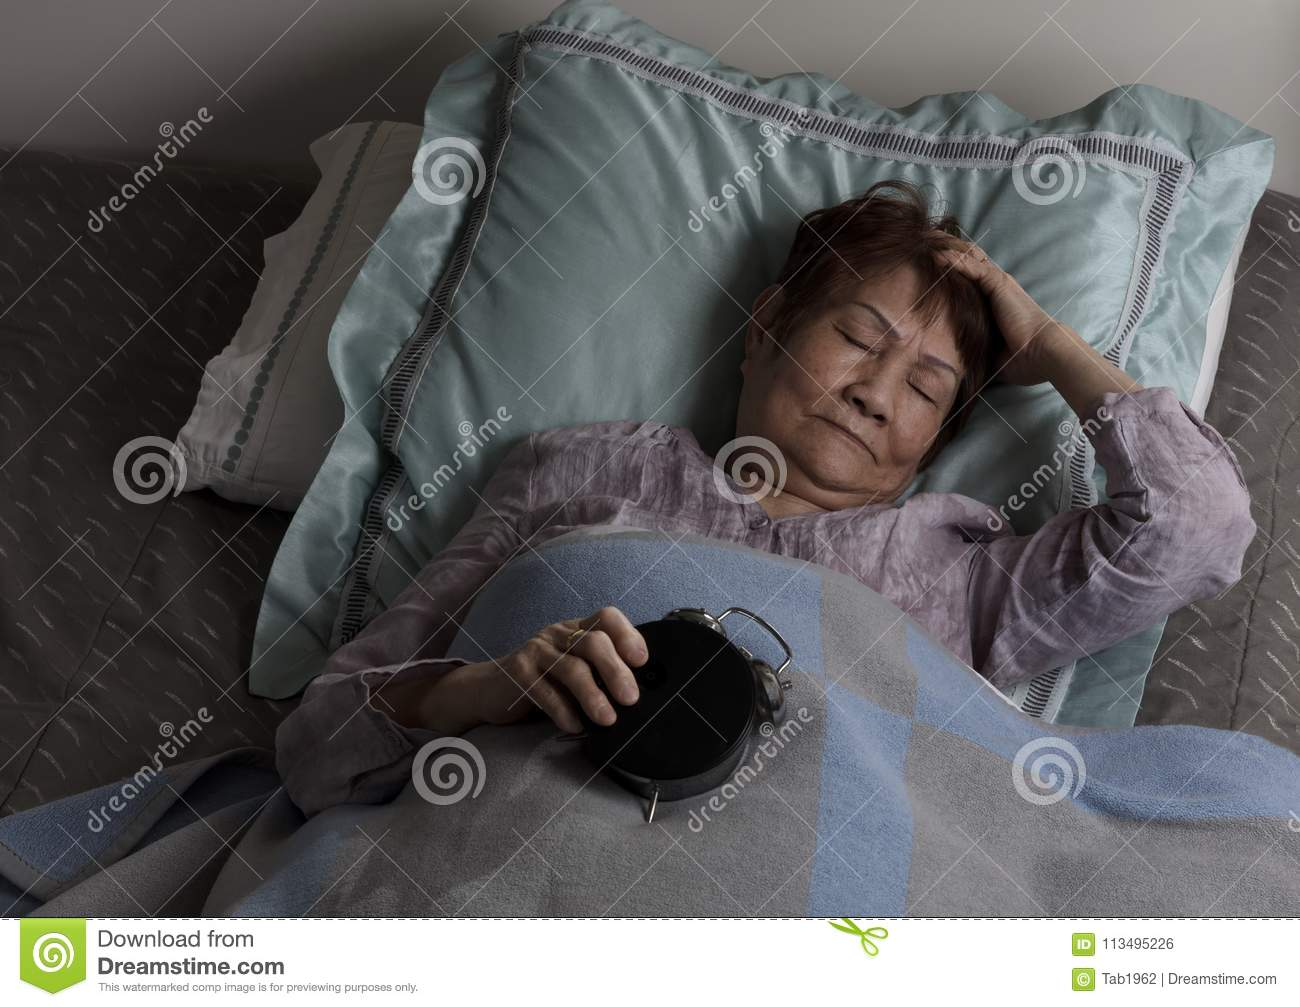 Restless senior woman holding alarm clock upside down during nighttime while in bed